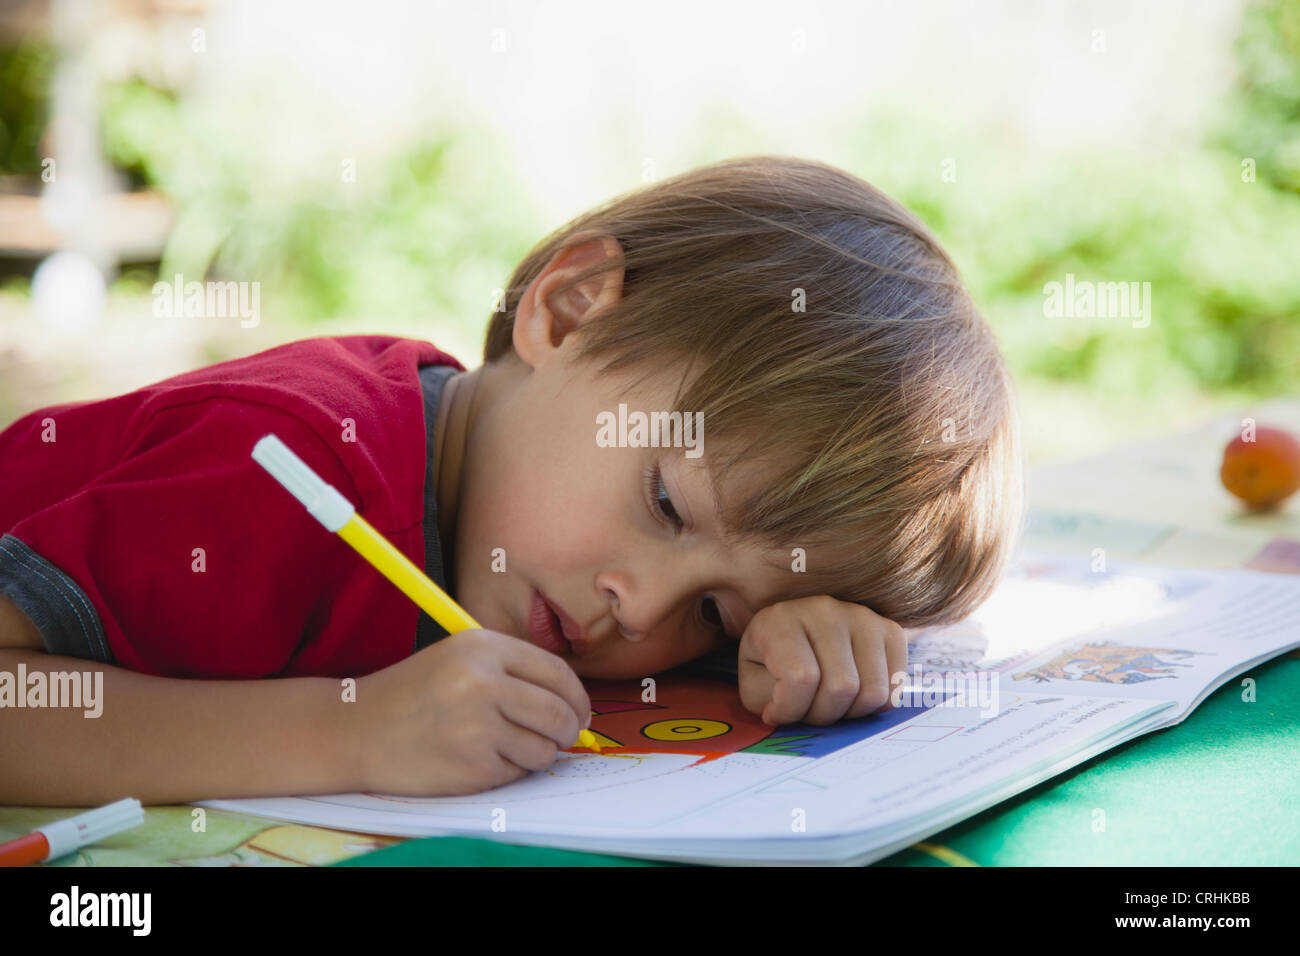 Boy coloring with markers Stock Photo: 48946223 - Alamy